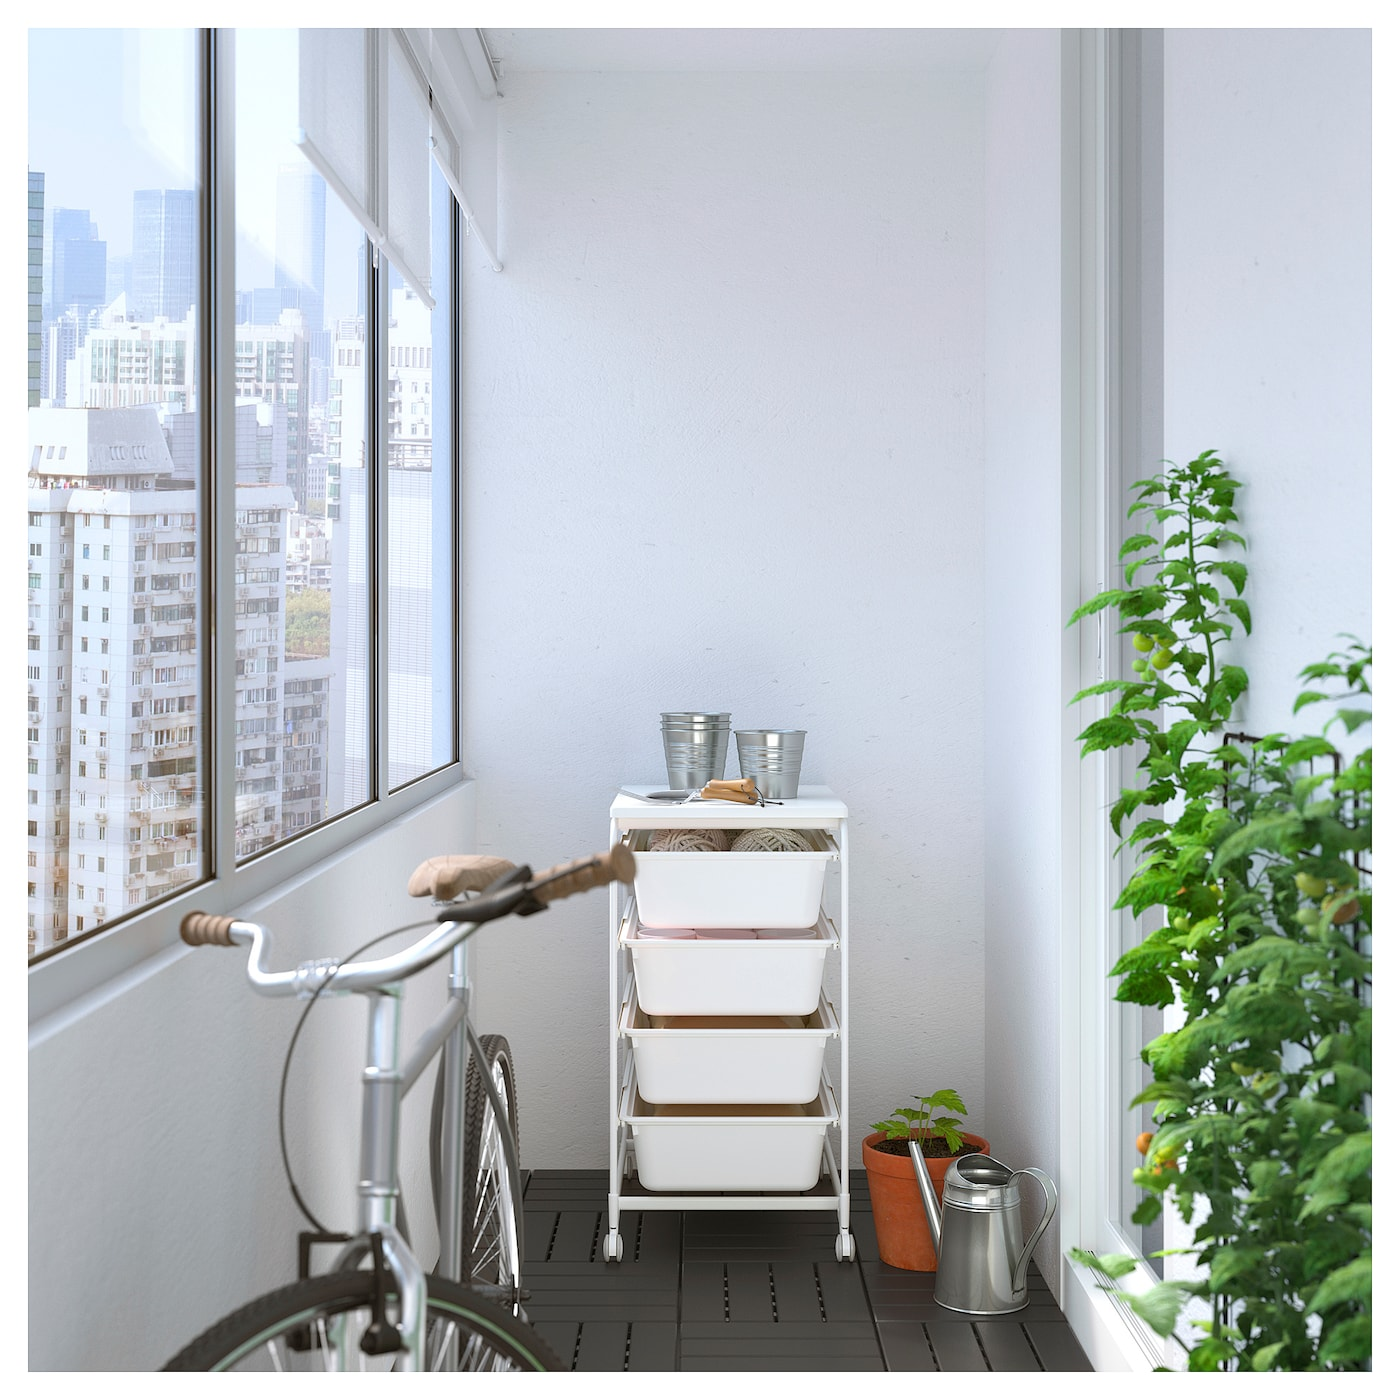 IKEA ALGOT frame/4 boxes/top shelf Can also be used in bathrooms and other damp areas indoors.